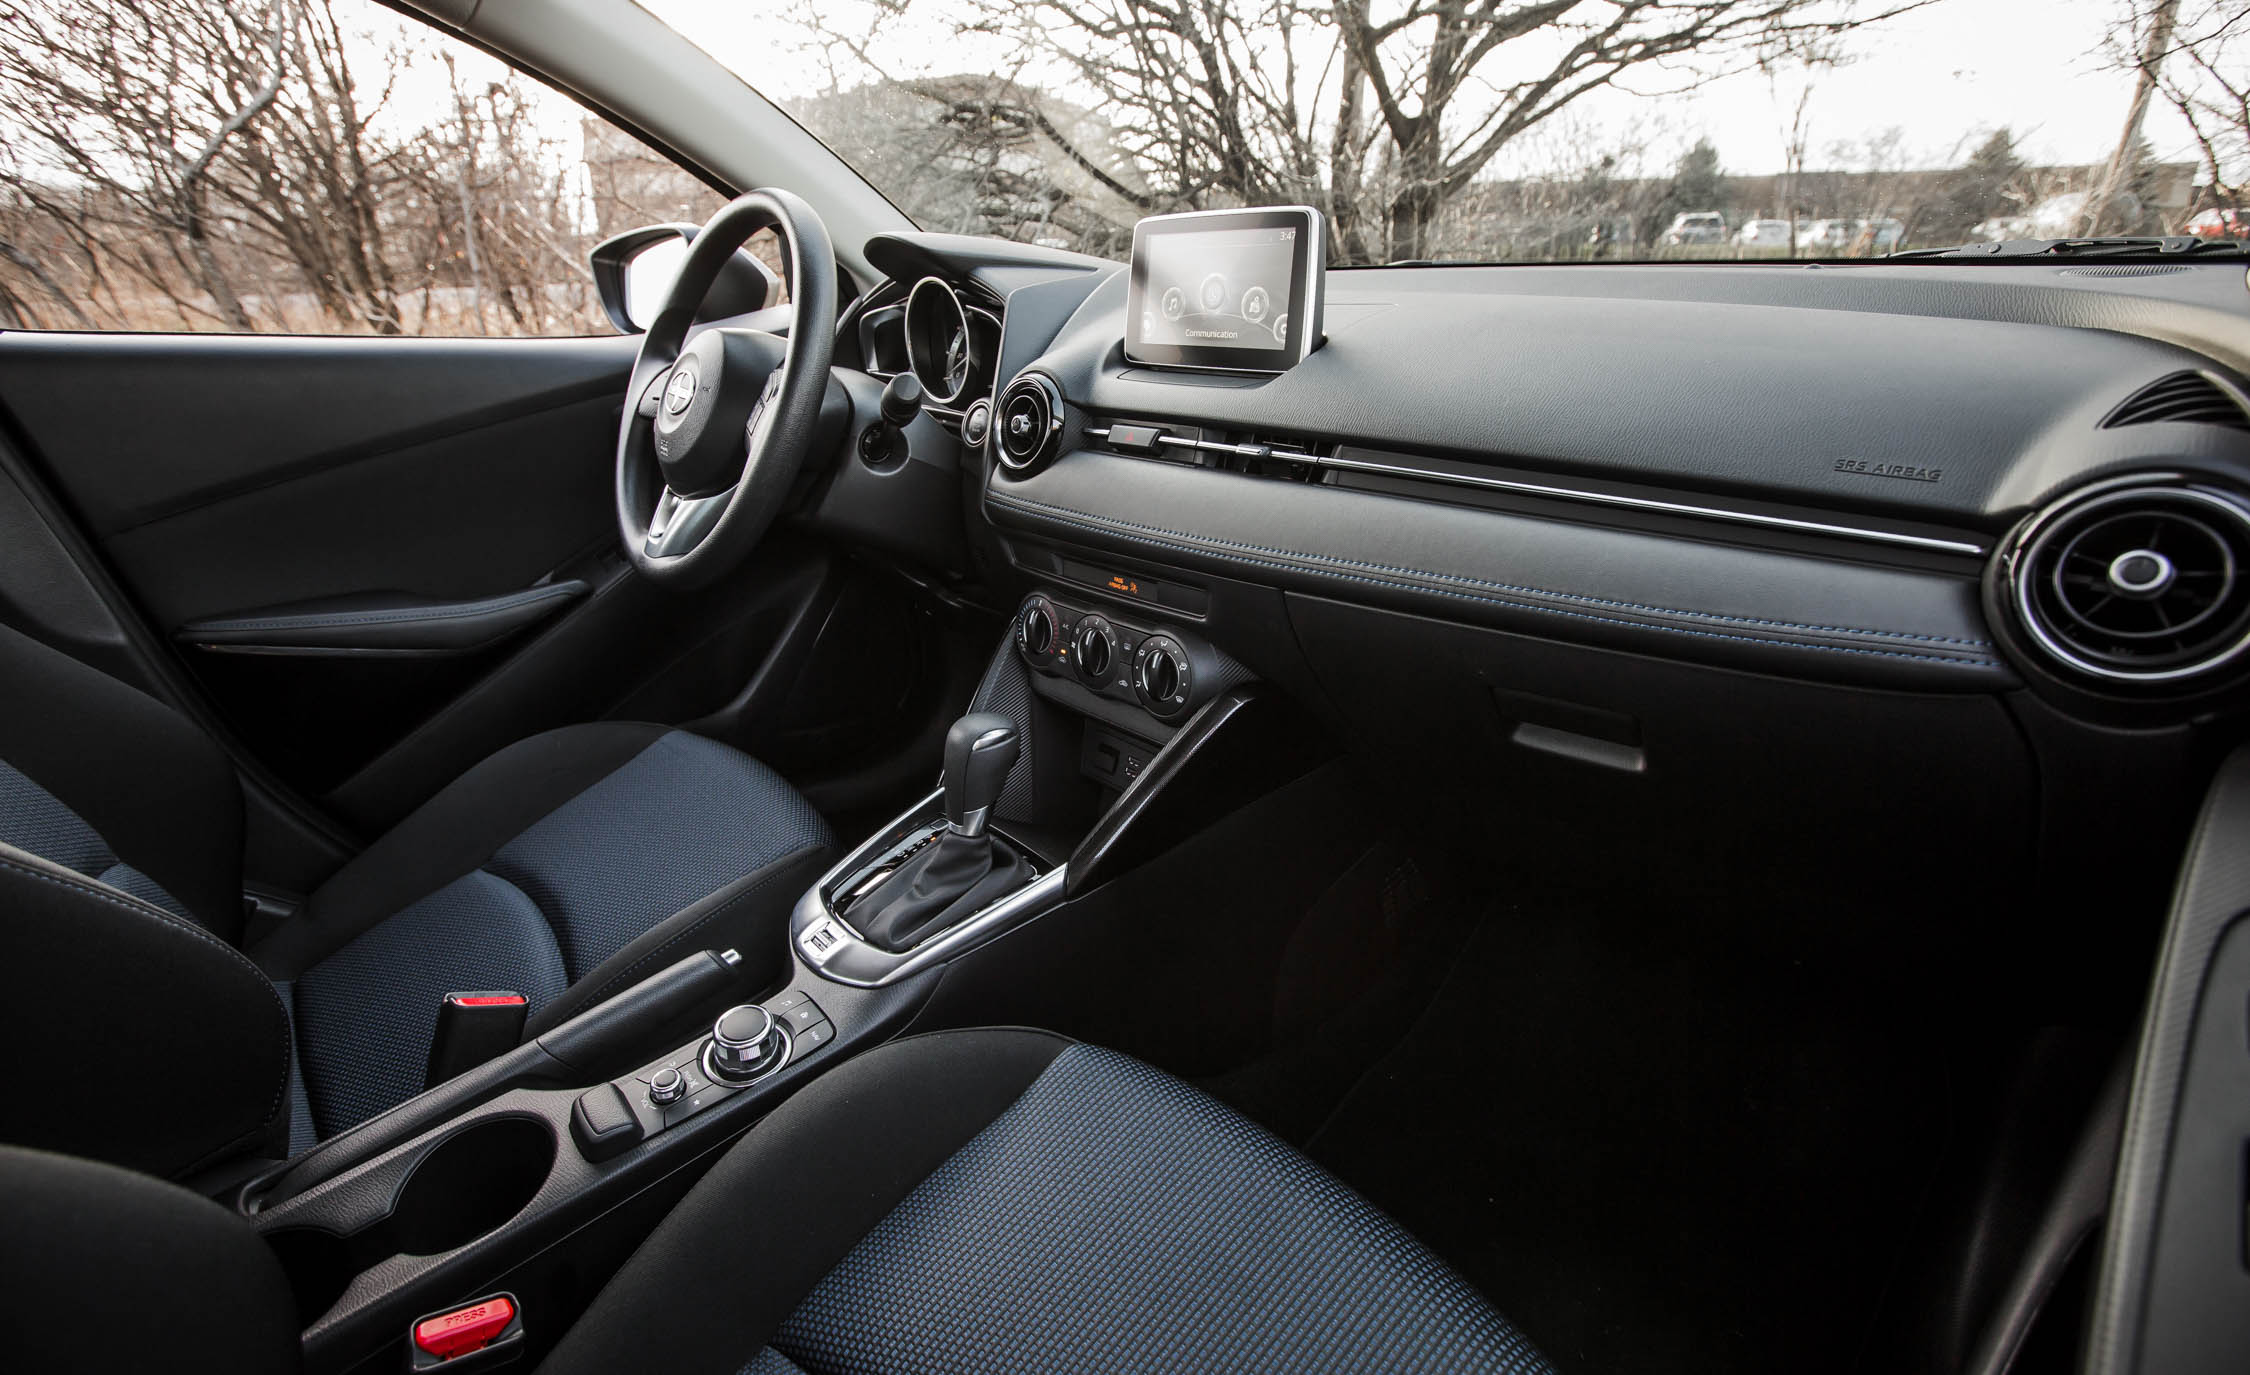 2016 Scion iA Interior Dashboard